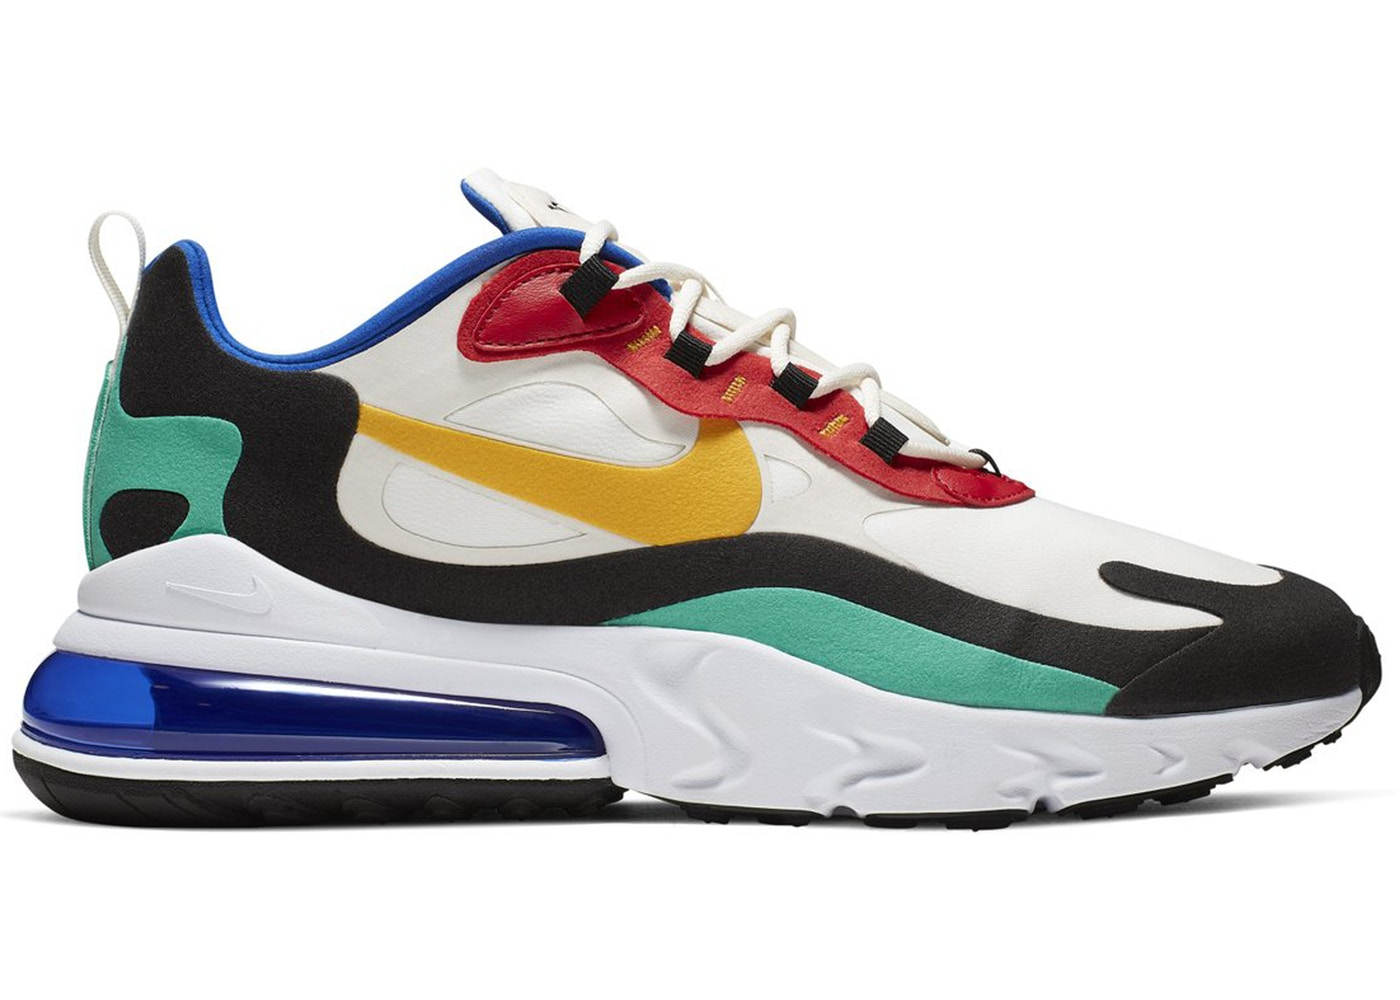 Wear the Bauhaus with Nike's new Air Max sneakers